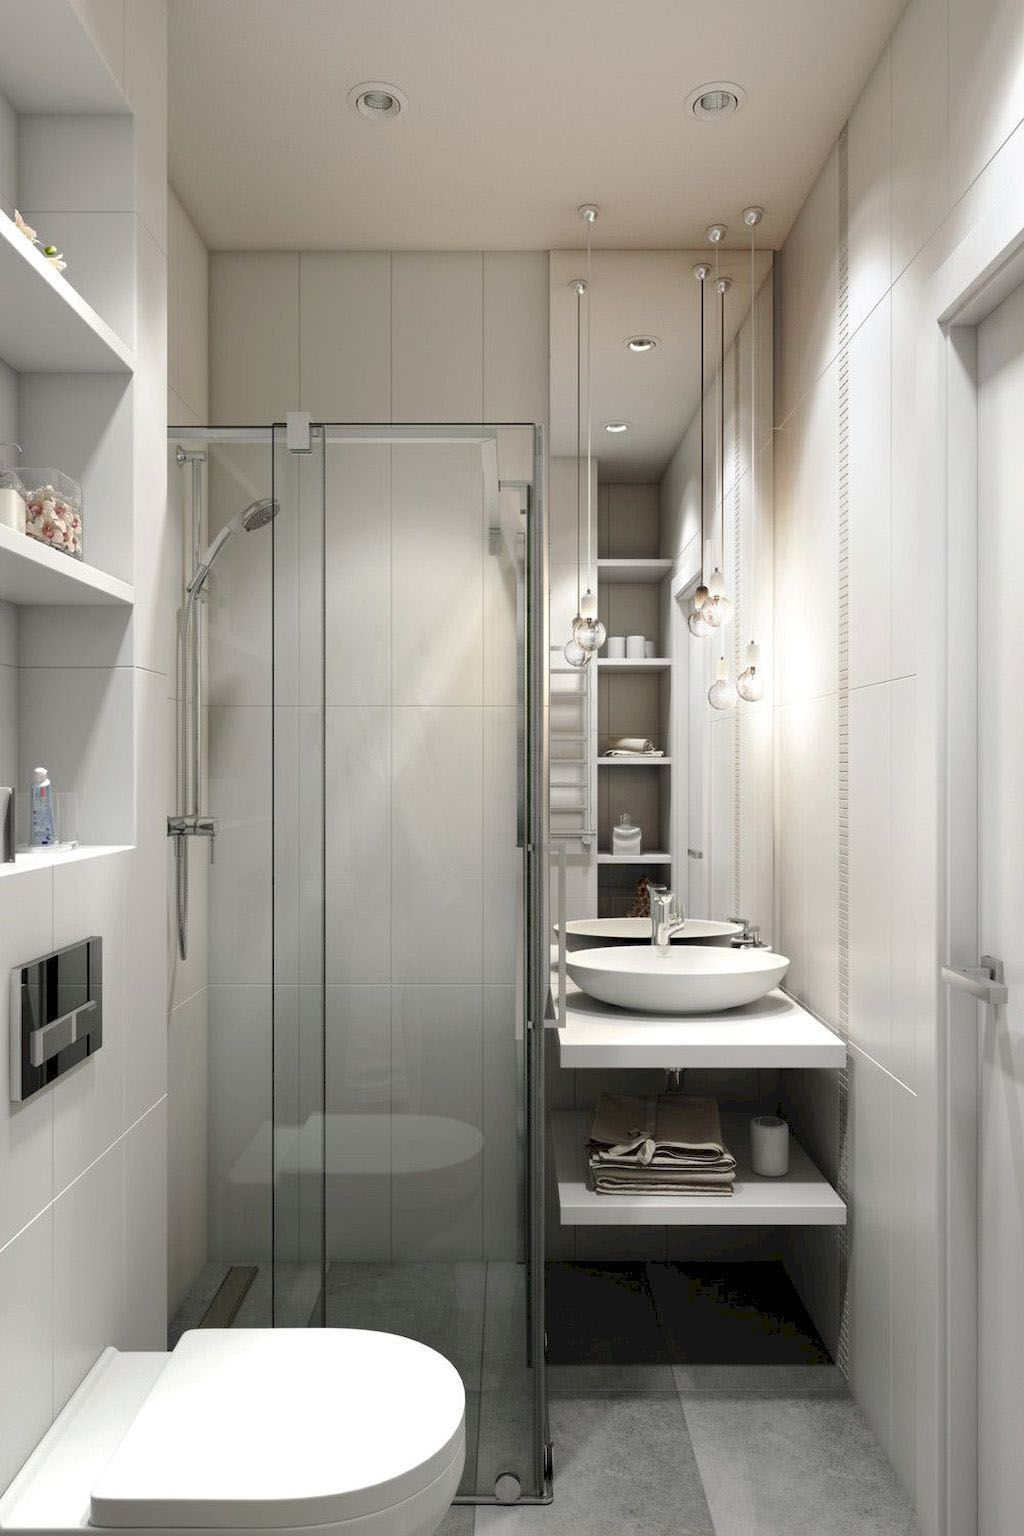 The Ultimate Guide Top 10 Bathroom Remodel Ideas Tips For 2019 With Images Bathroom Layout Tiny House Bathroom Small Bathroom